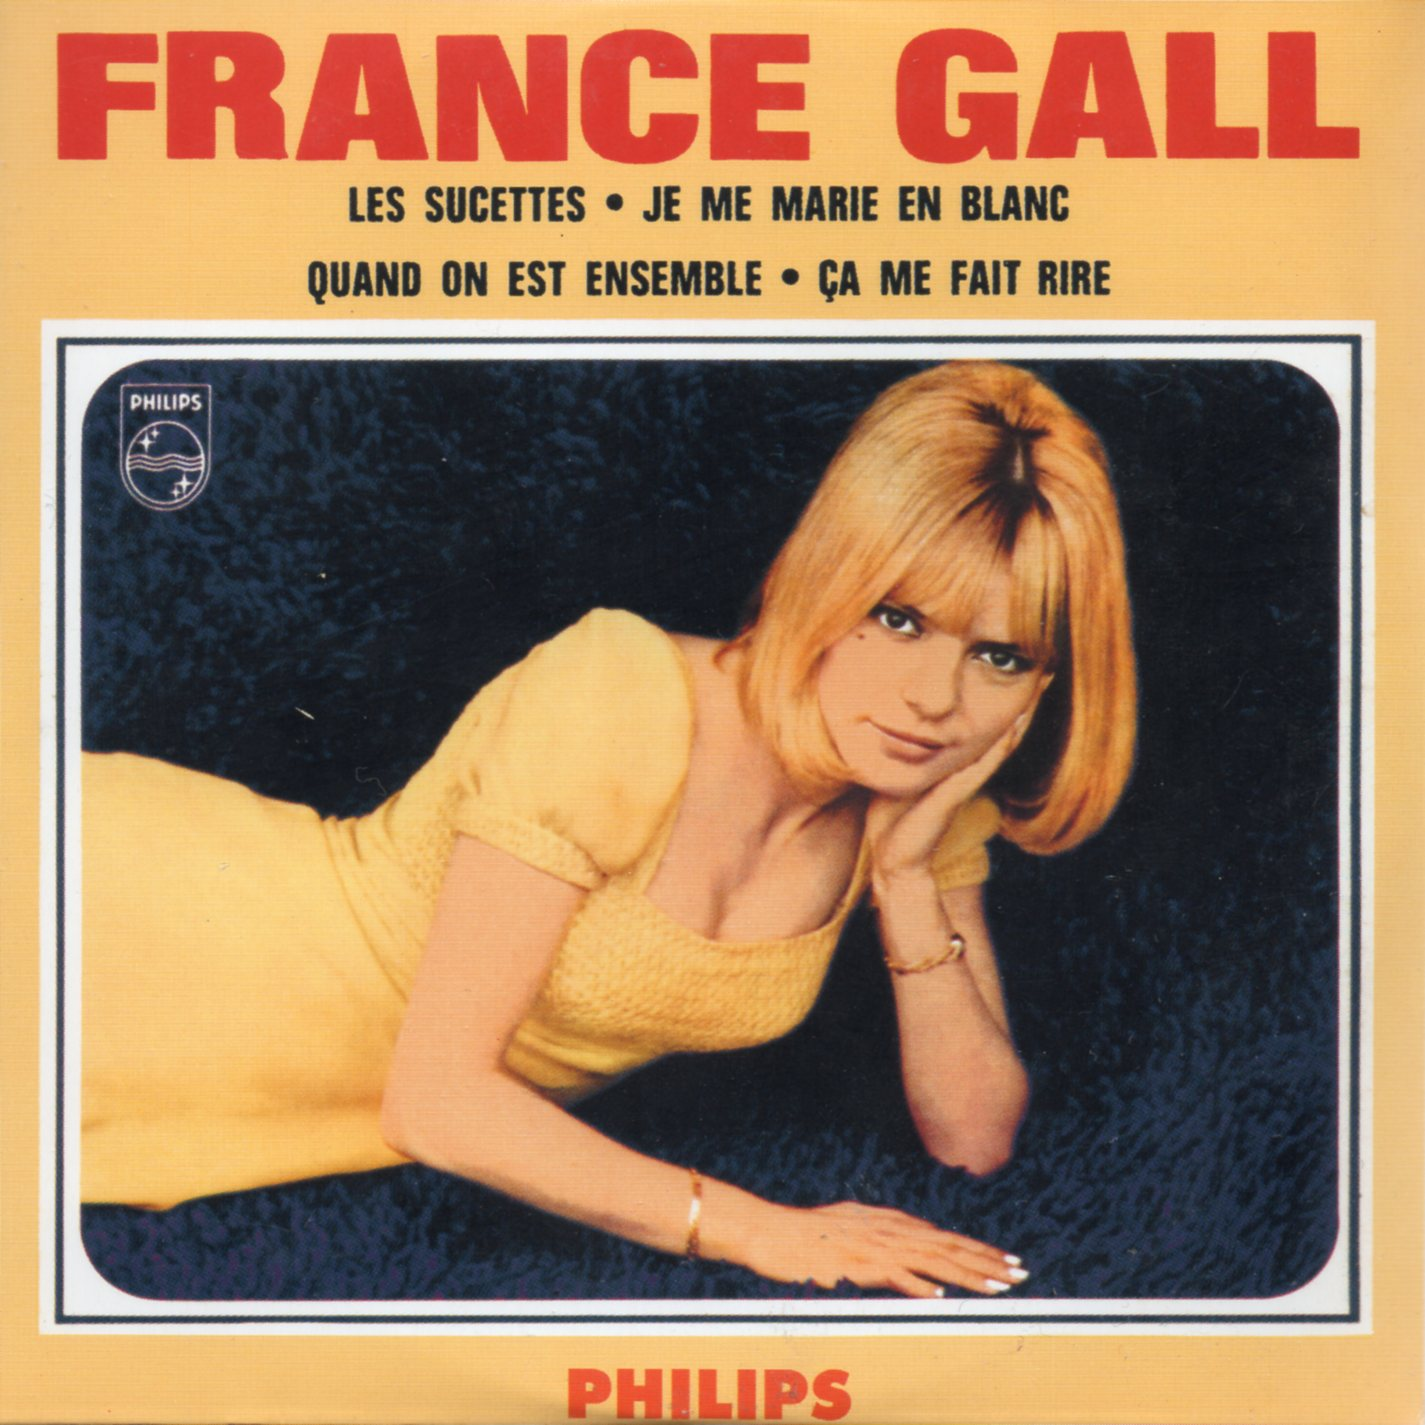 FRANCE GALL - Les sucettes 4-TRACK CARD SLEEVE - CD single